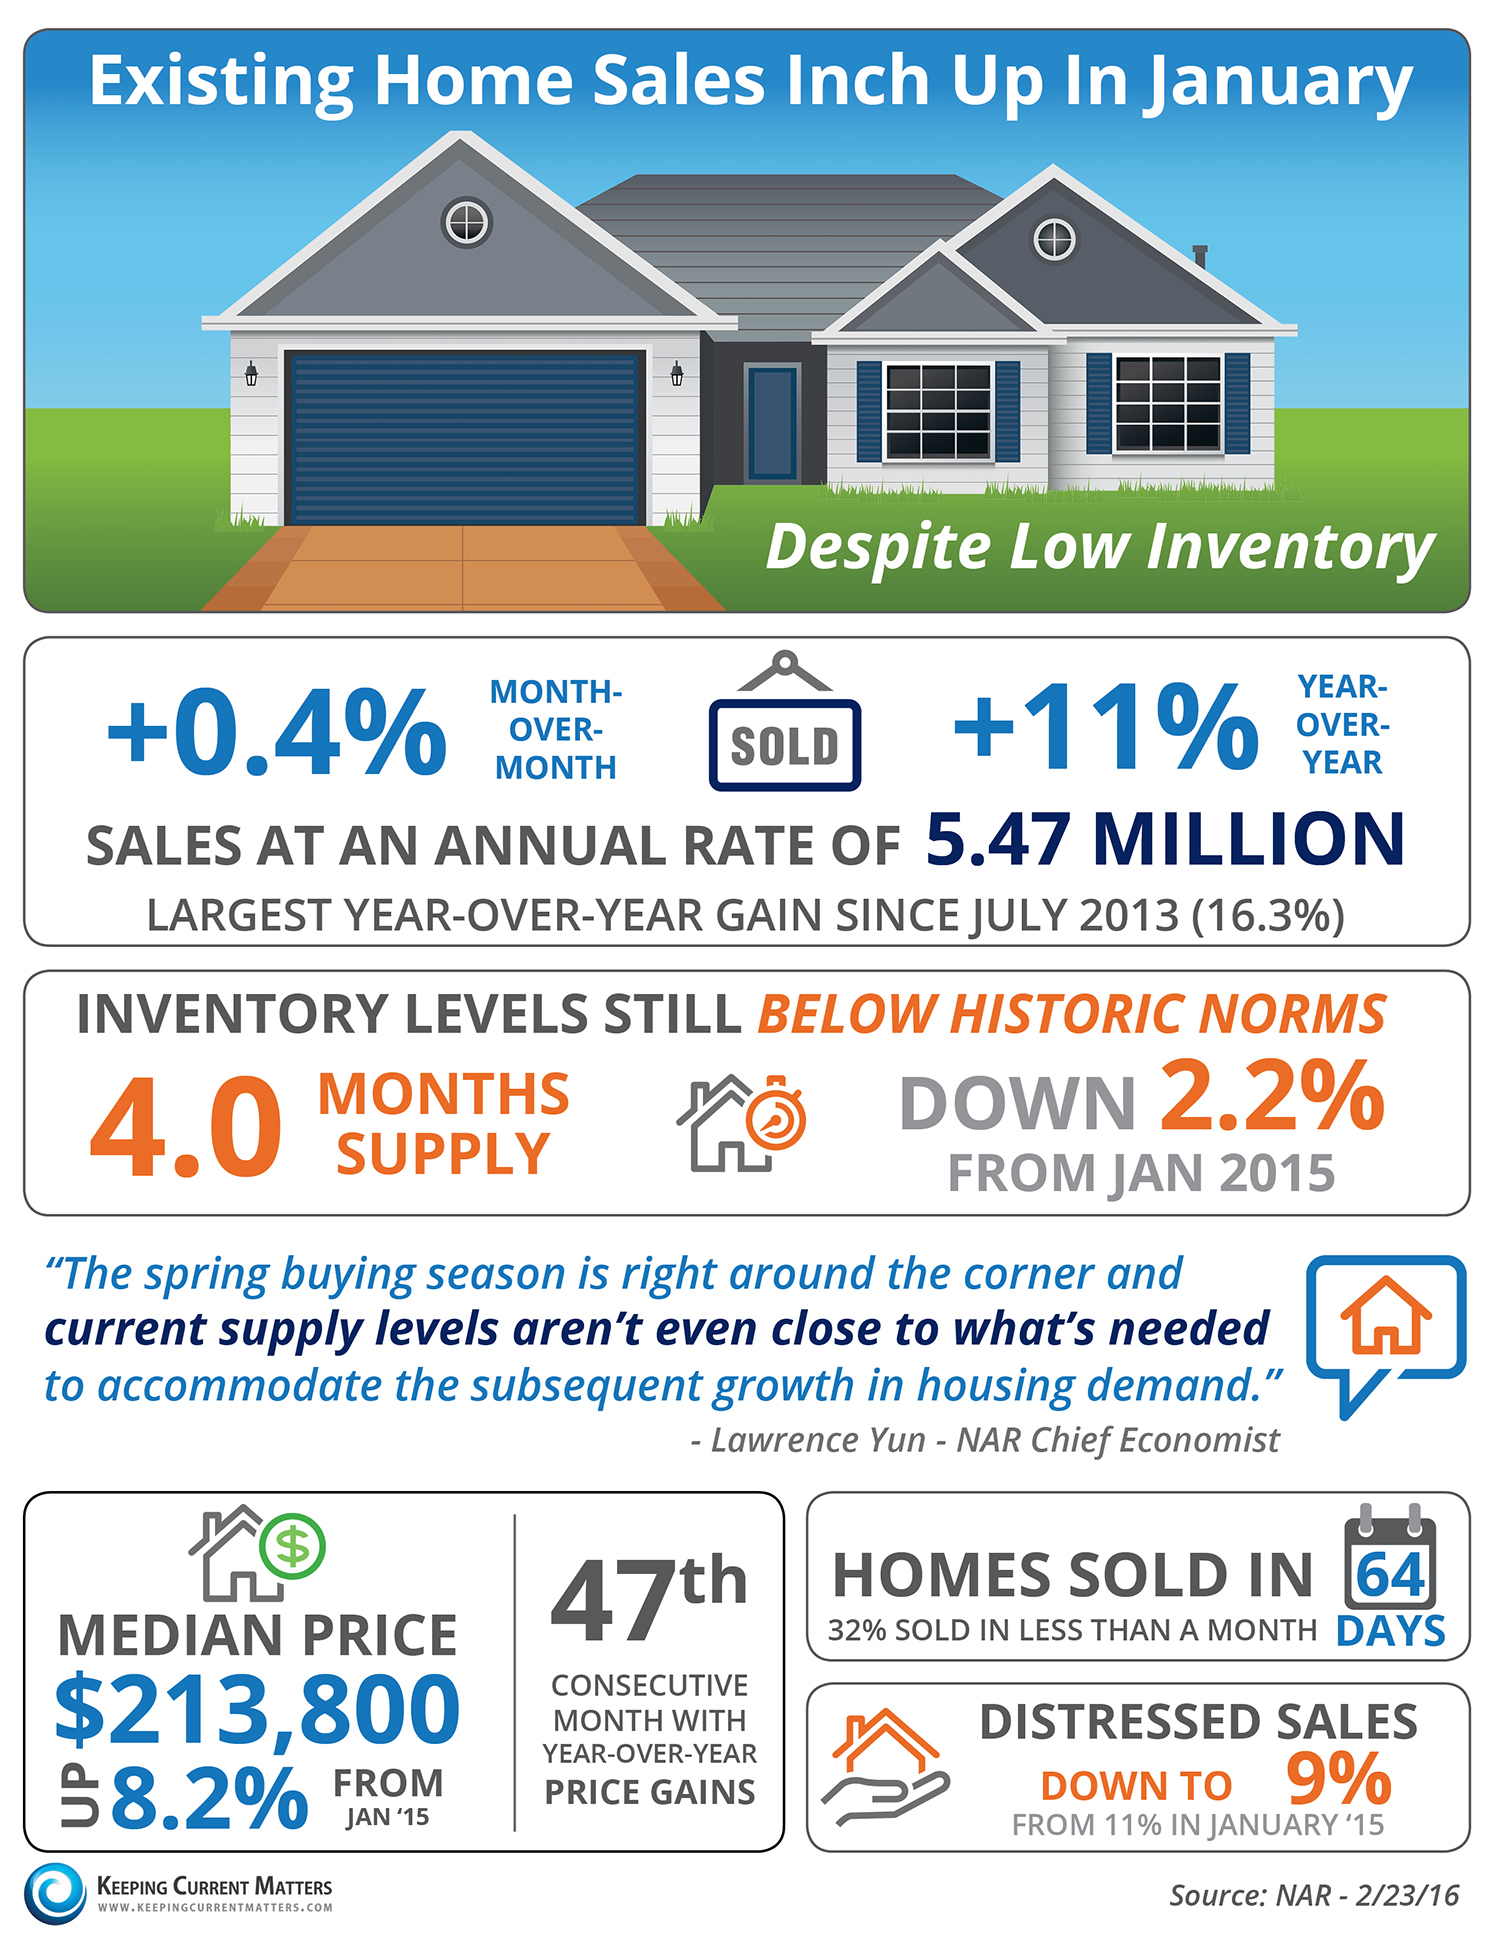 Exising Home Sales Inch Up In January [INFOGRAPHIC] | Keeping Current Matters